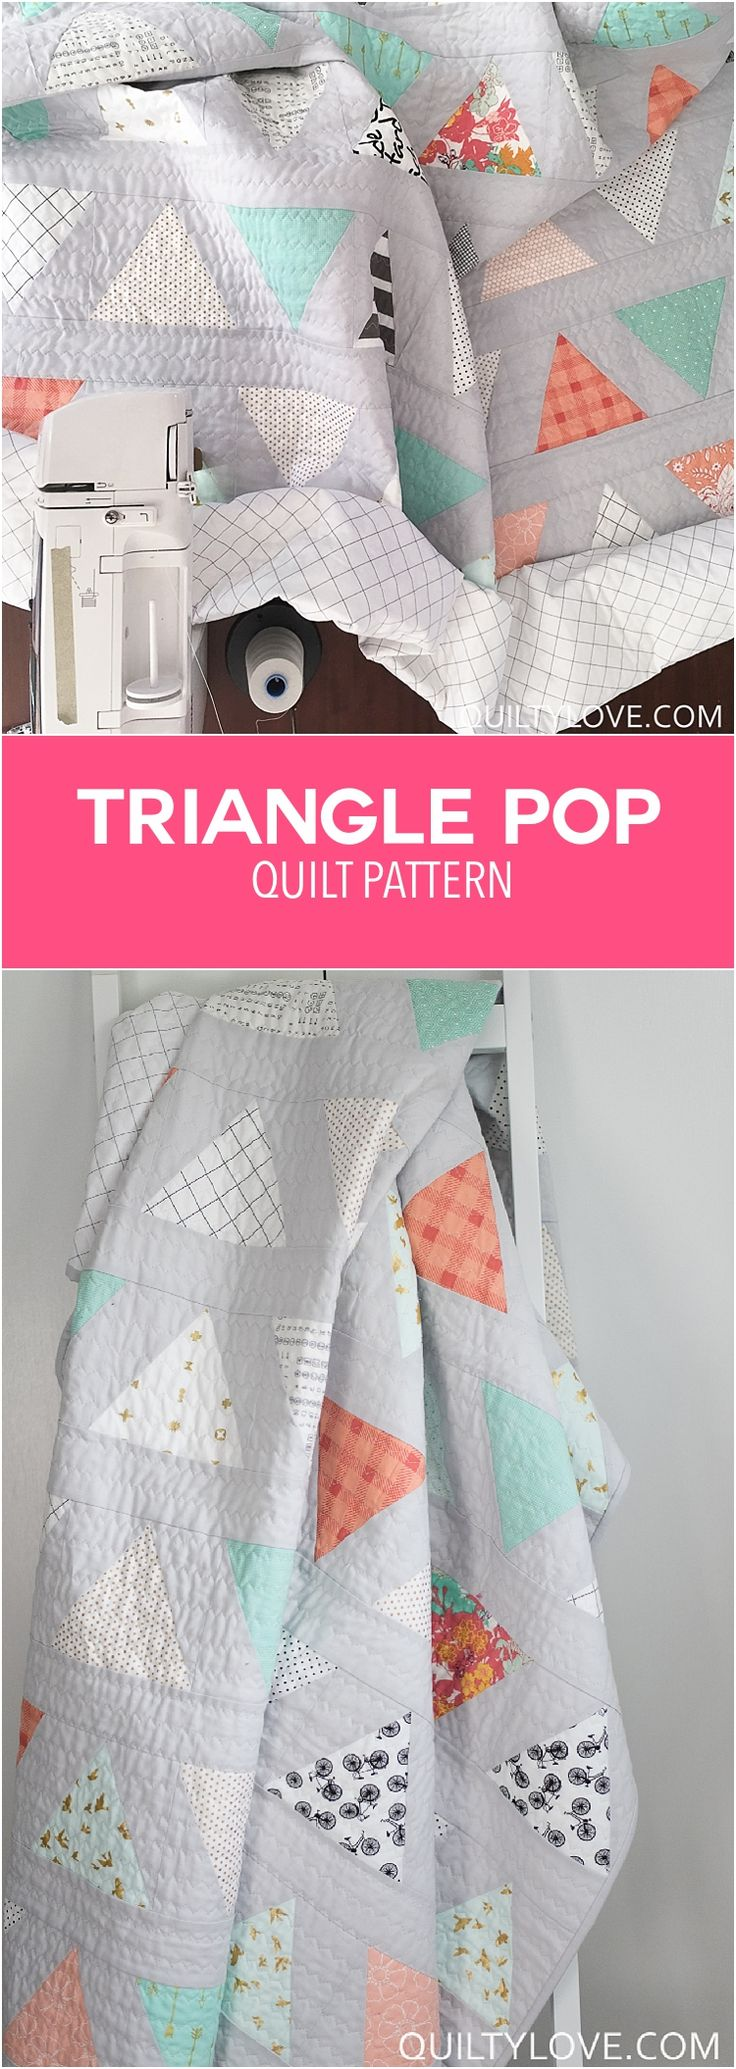 84 best Triangle quilts images on Pinterest | Triangle quilts ...